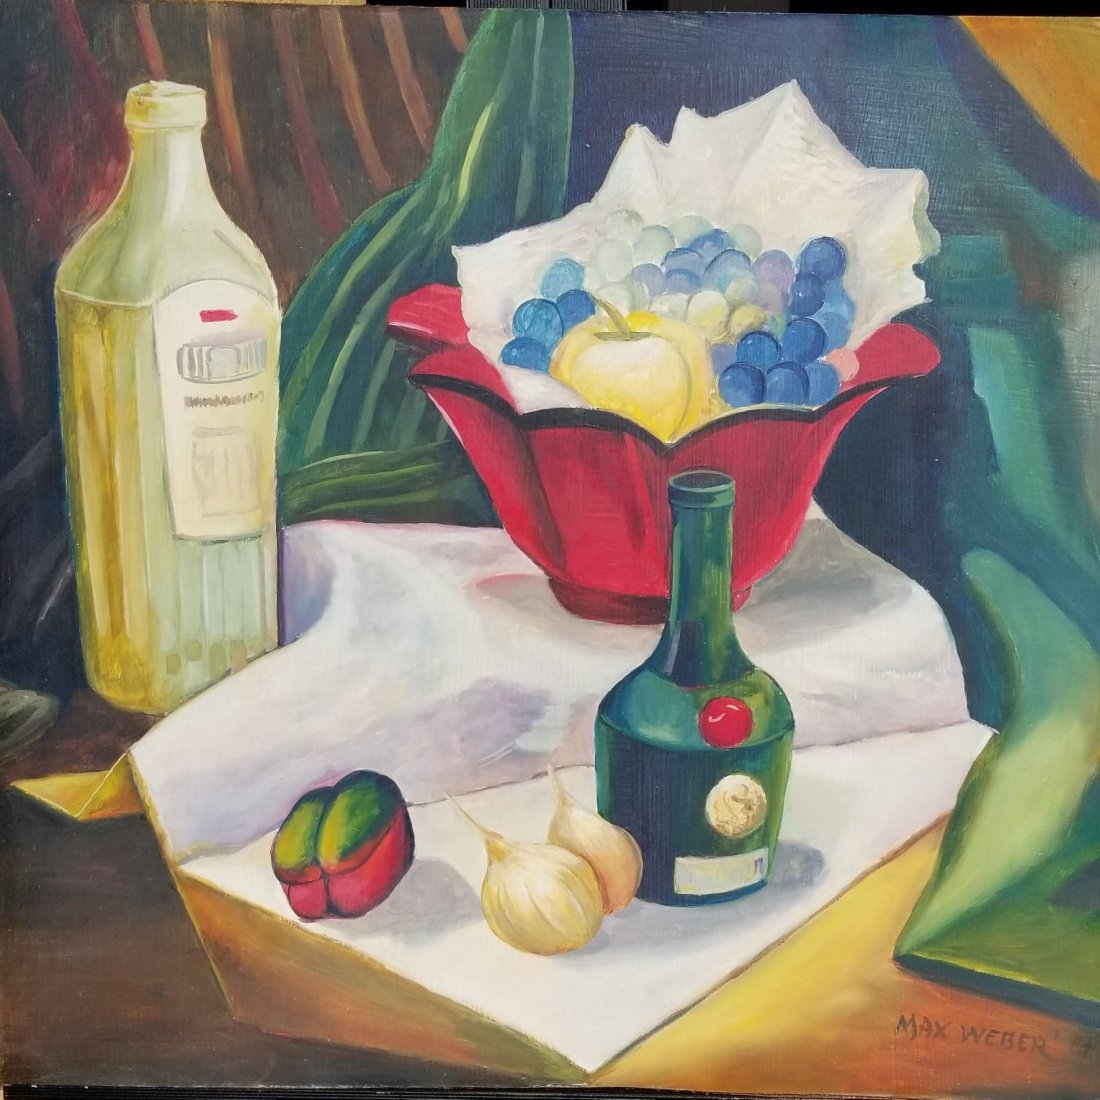 Max  Weber (1864-1920)Attributed- Was